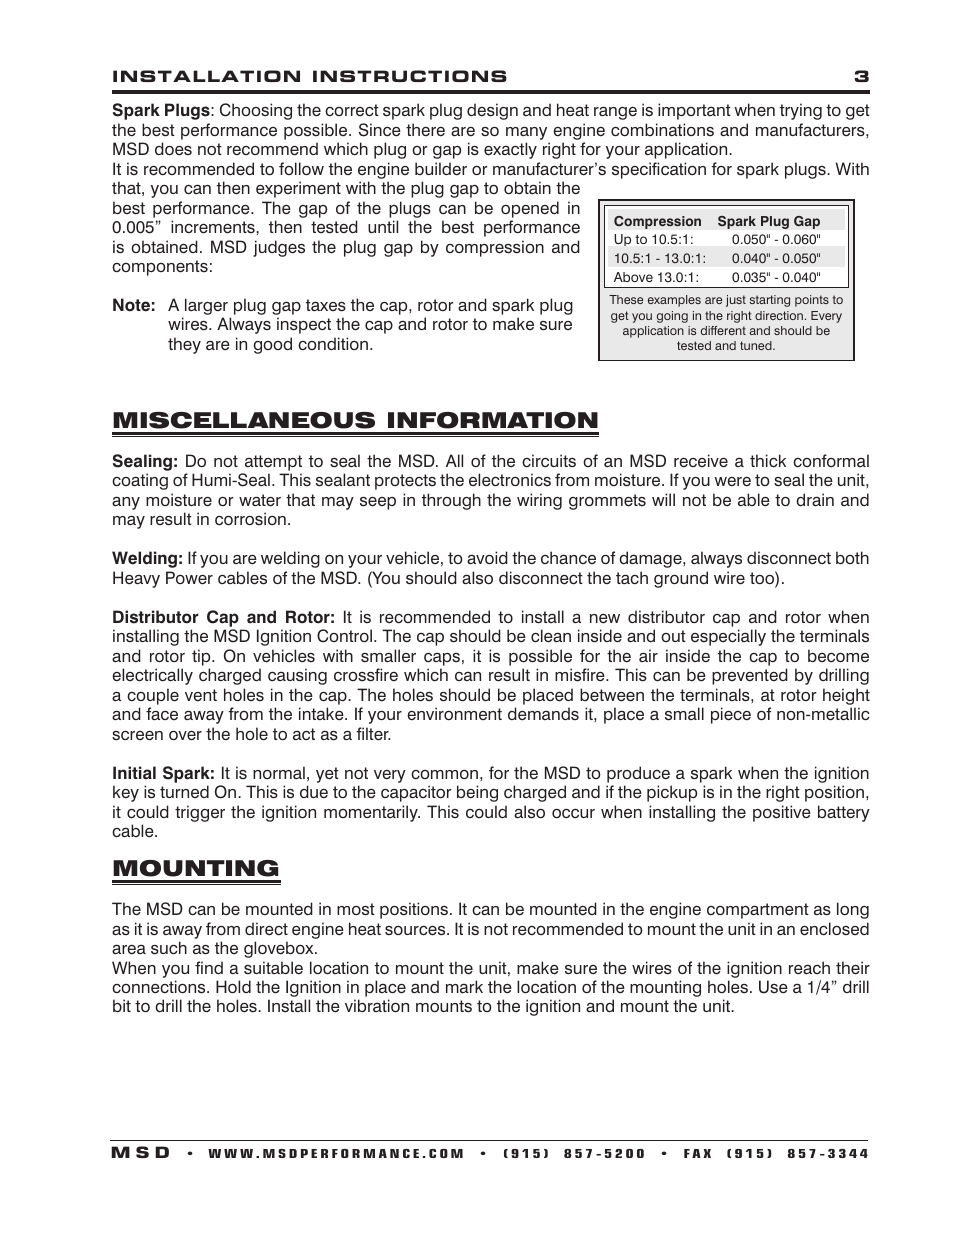 Miscellaneous information, Mounting | MSD 7222 7AL-2 Ignition ...